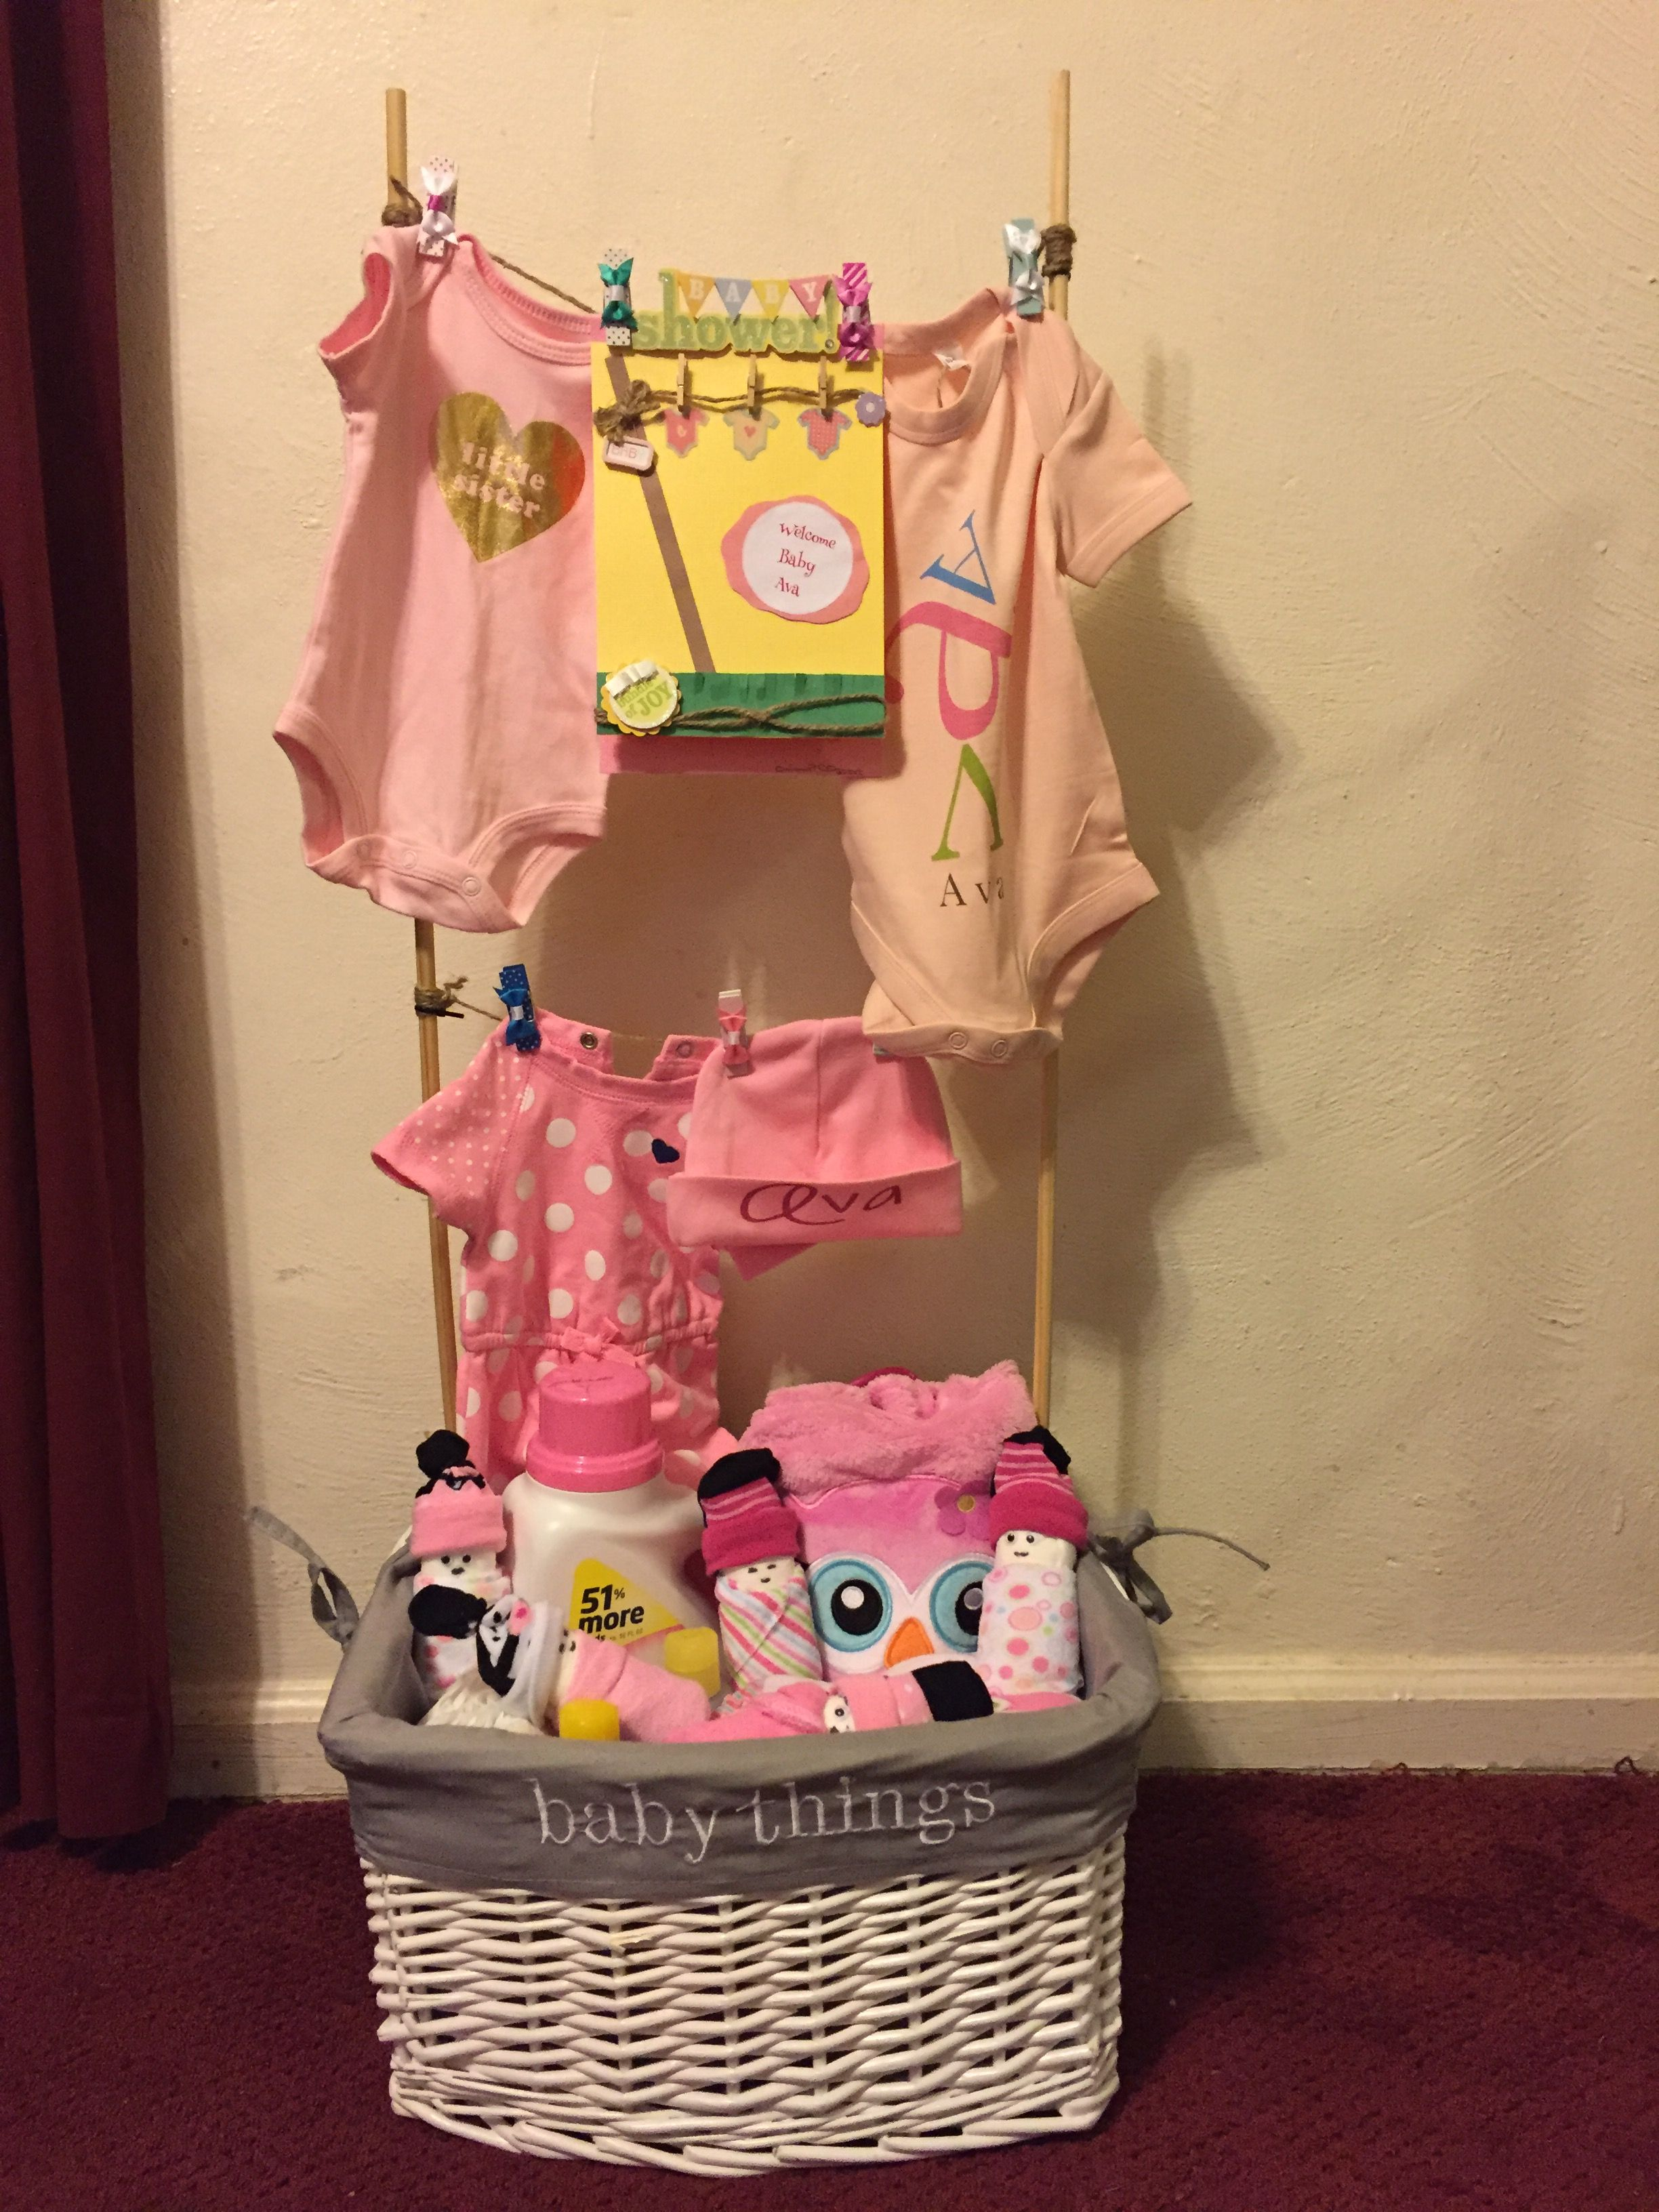 Baby Laundry Bin Baby Clothesline Laundry Basket I Made Diaper Cakes In